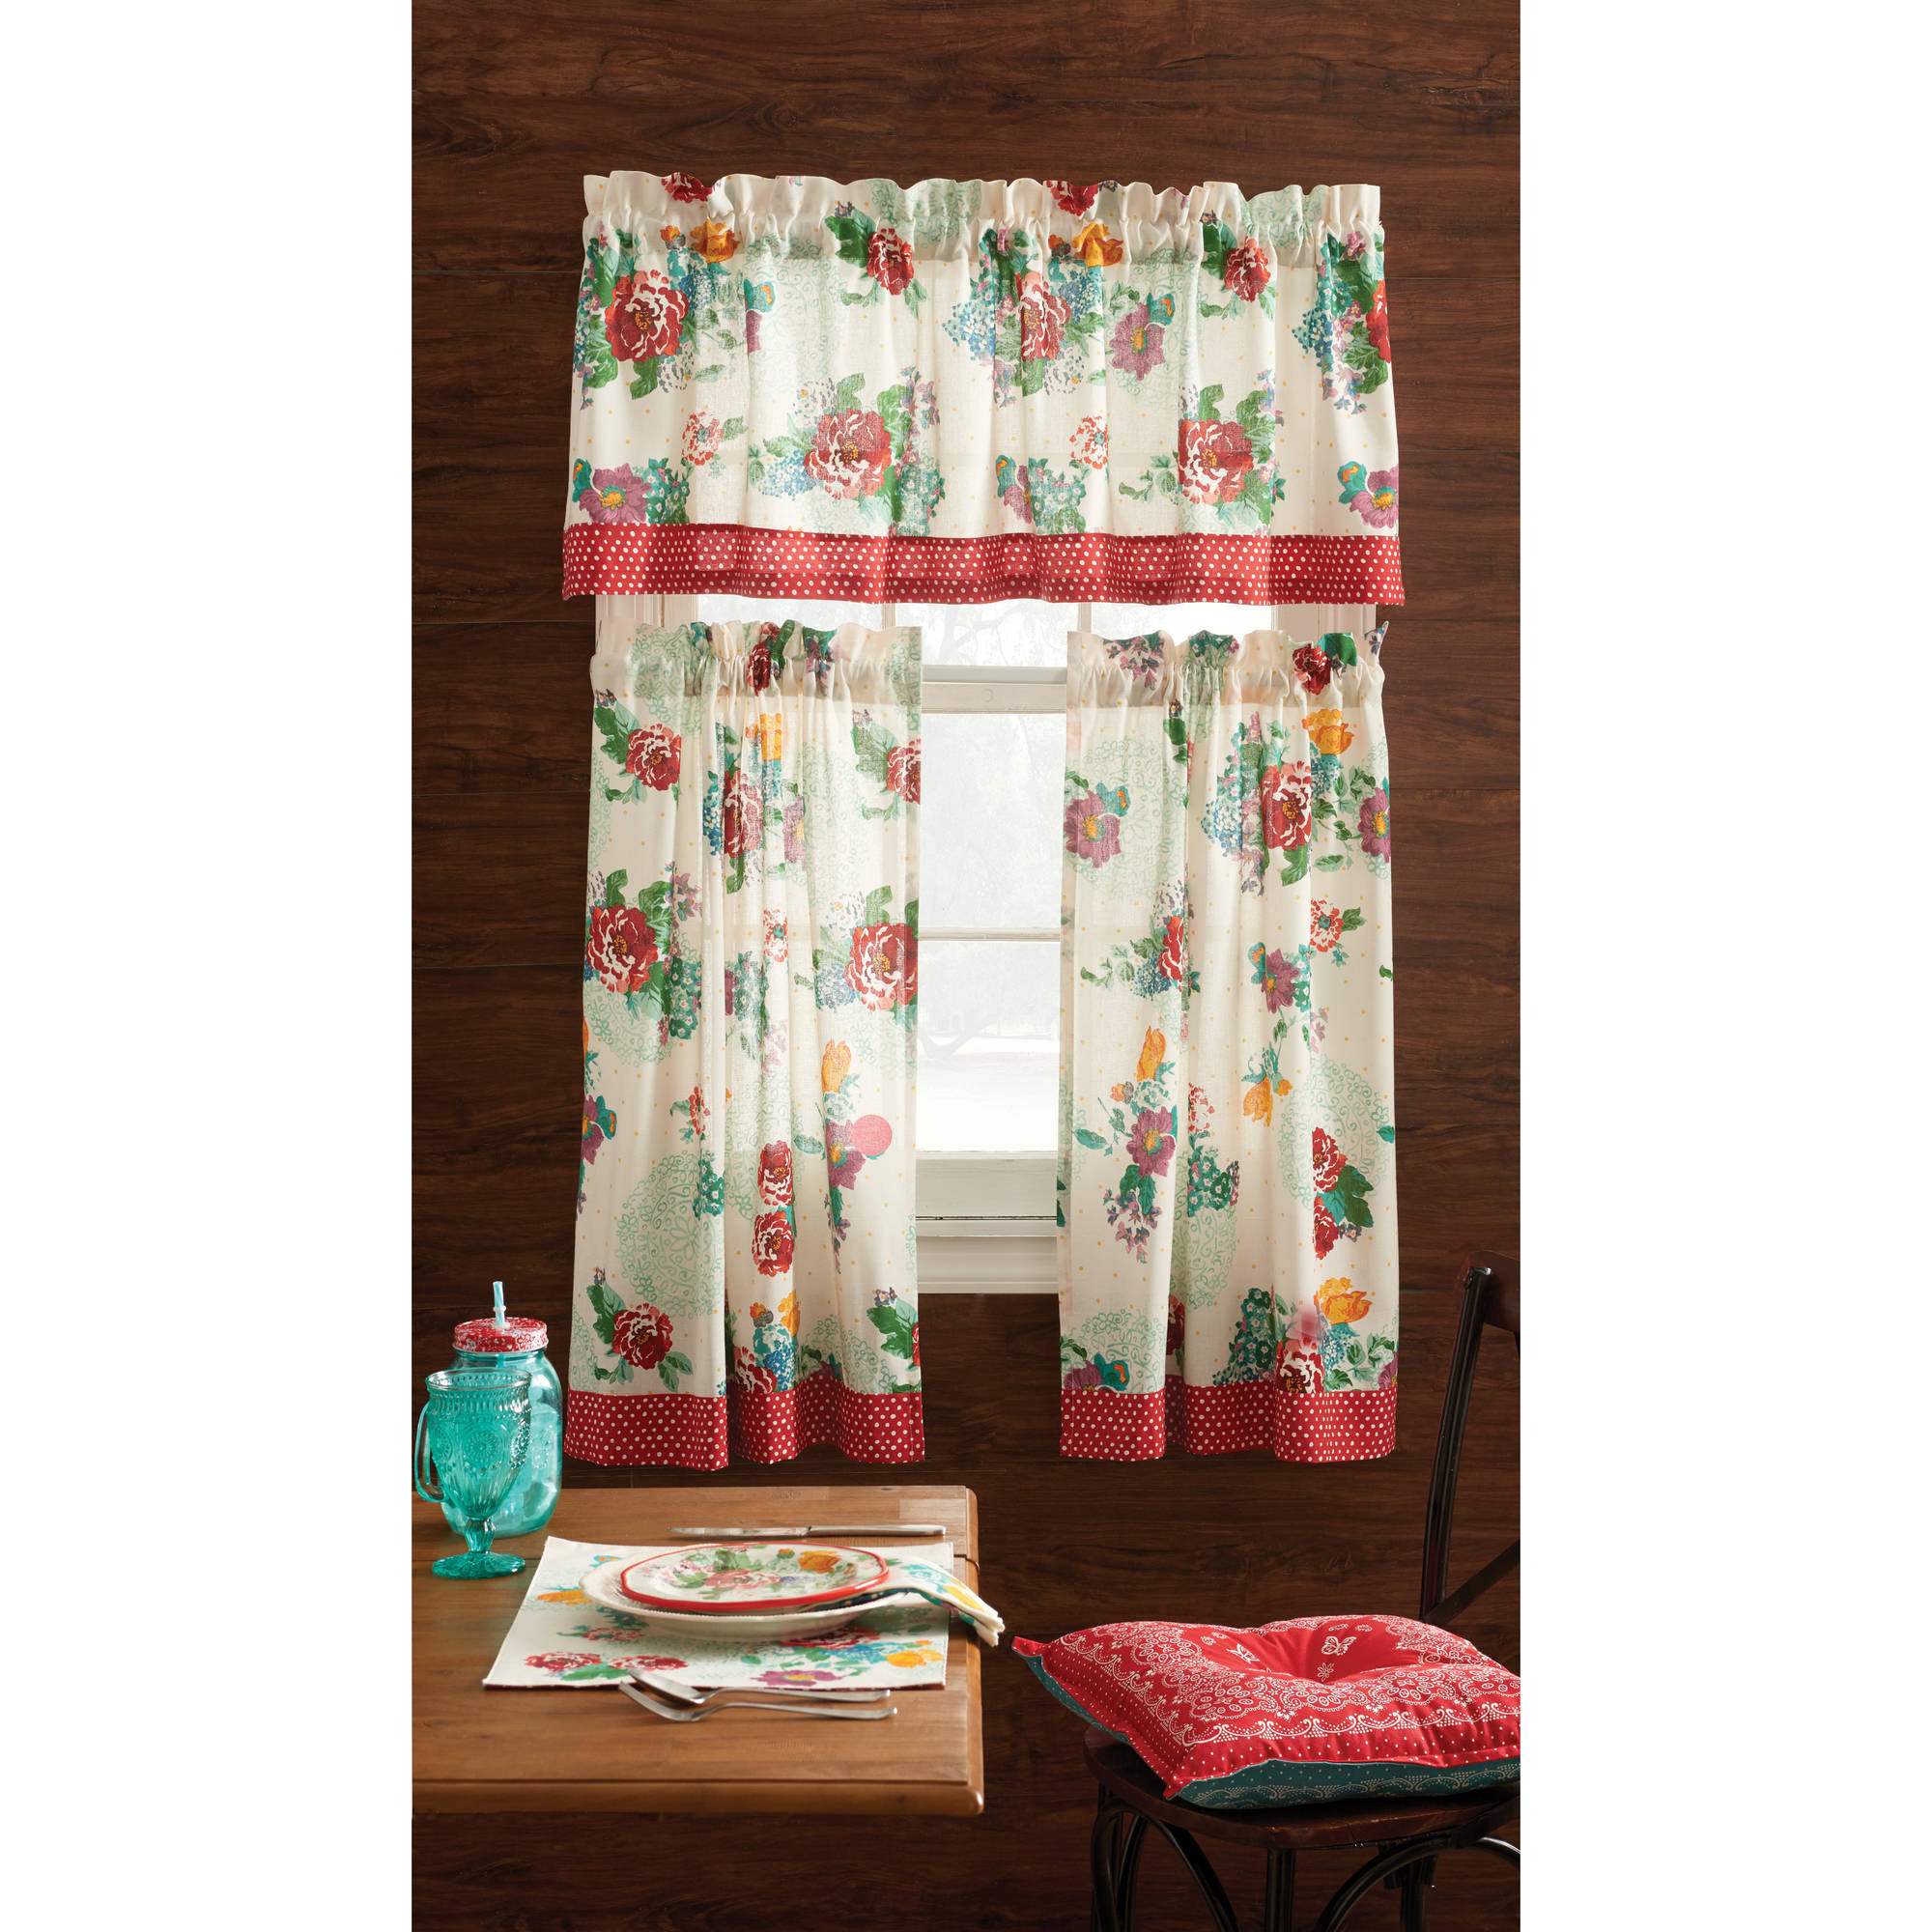 Pioneer Woman Kitchen Curtain and Valance 3pc Set, Country Garden